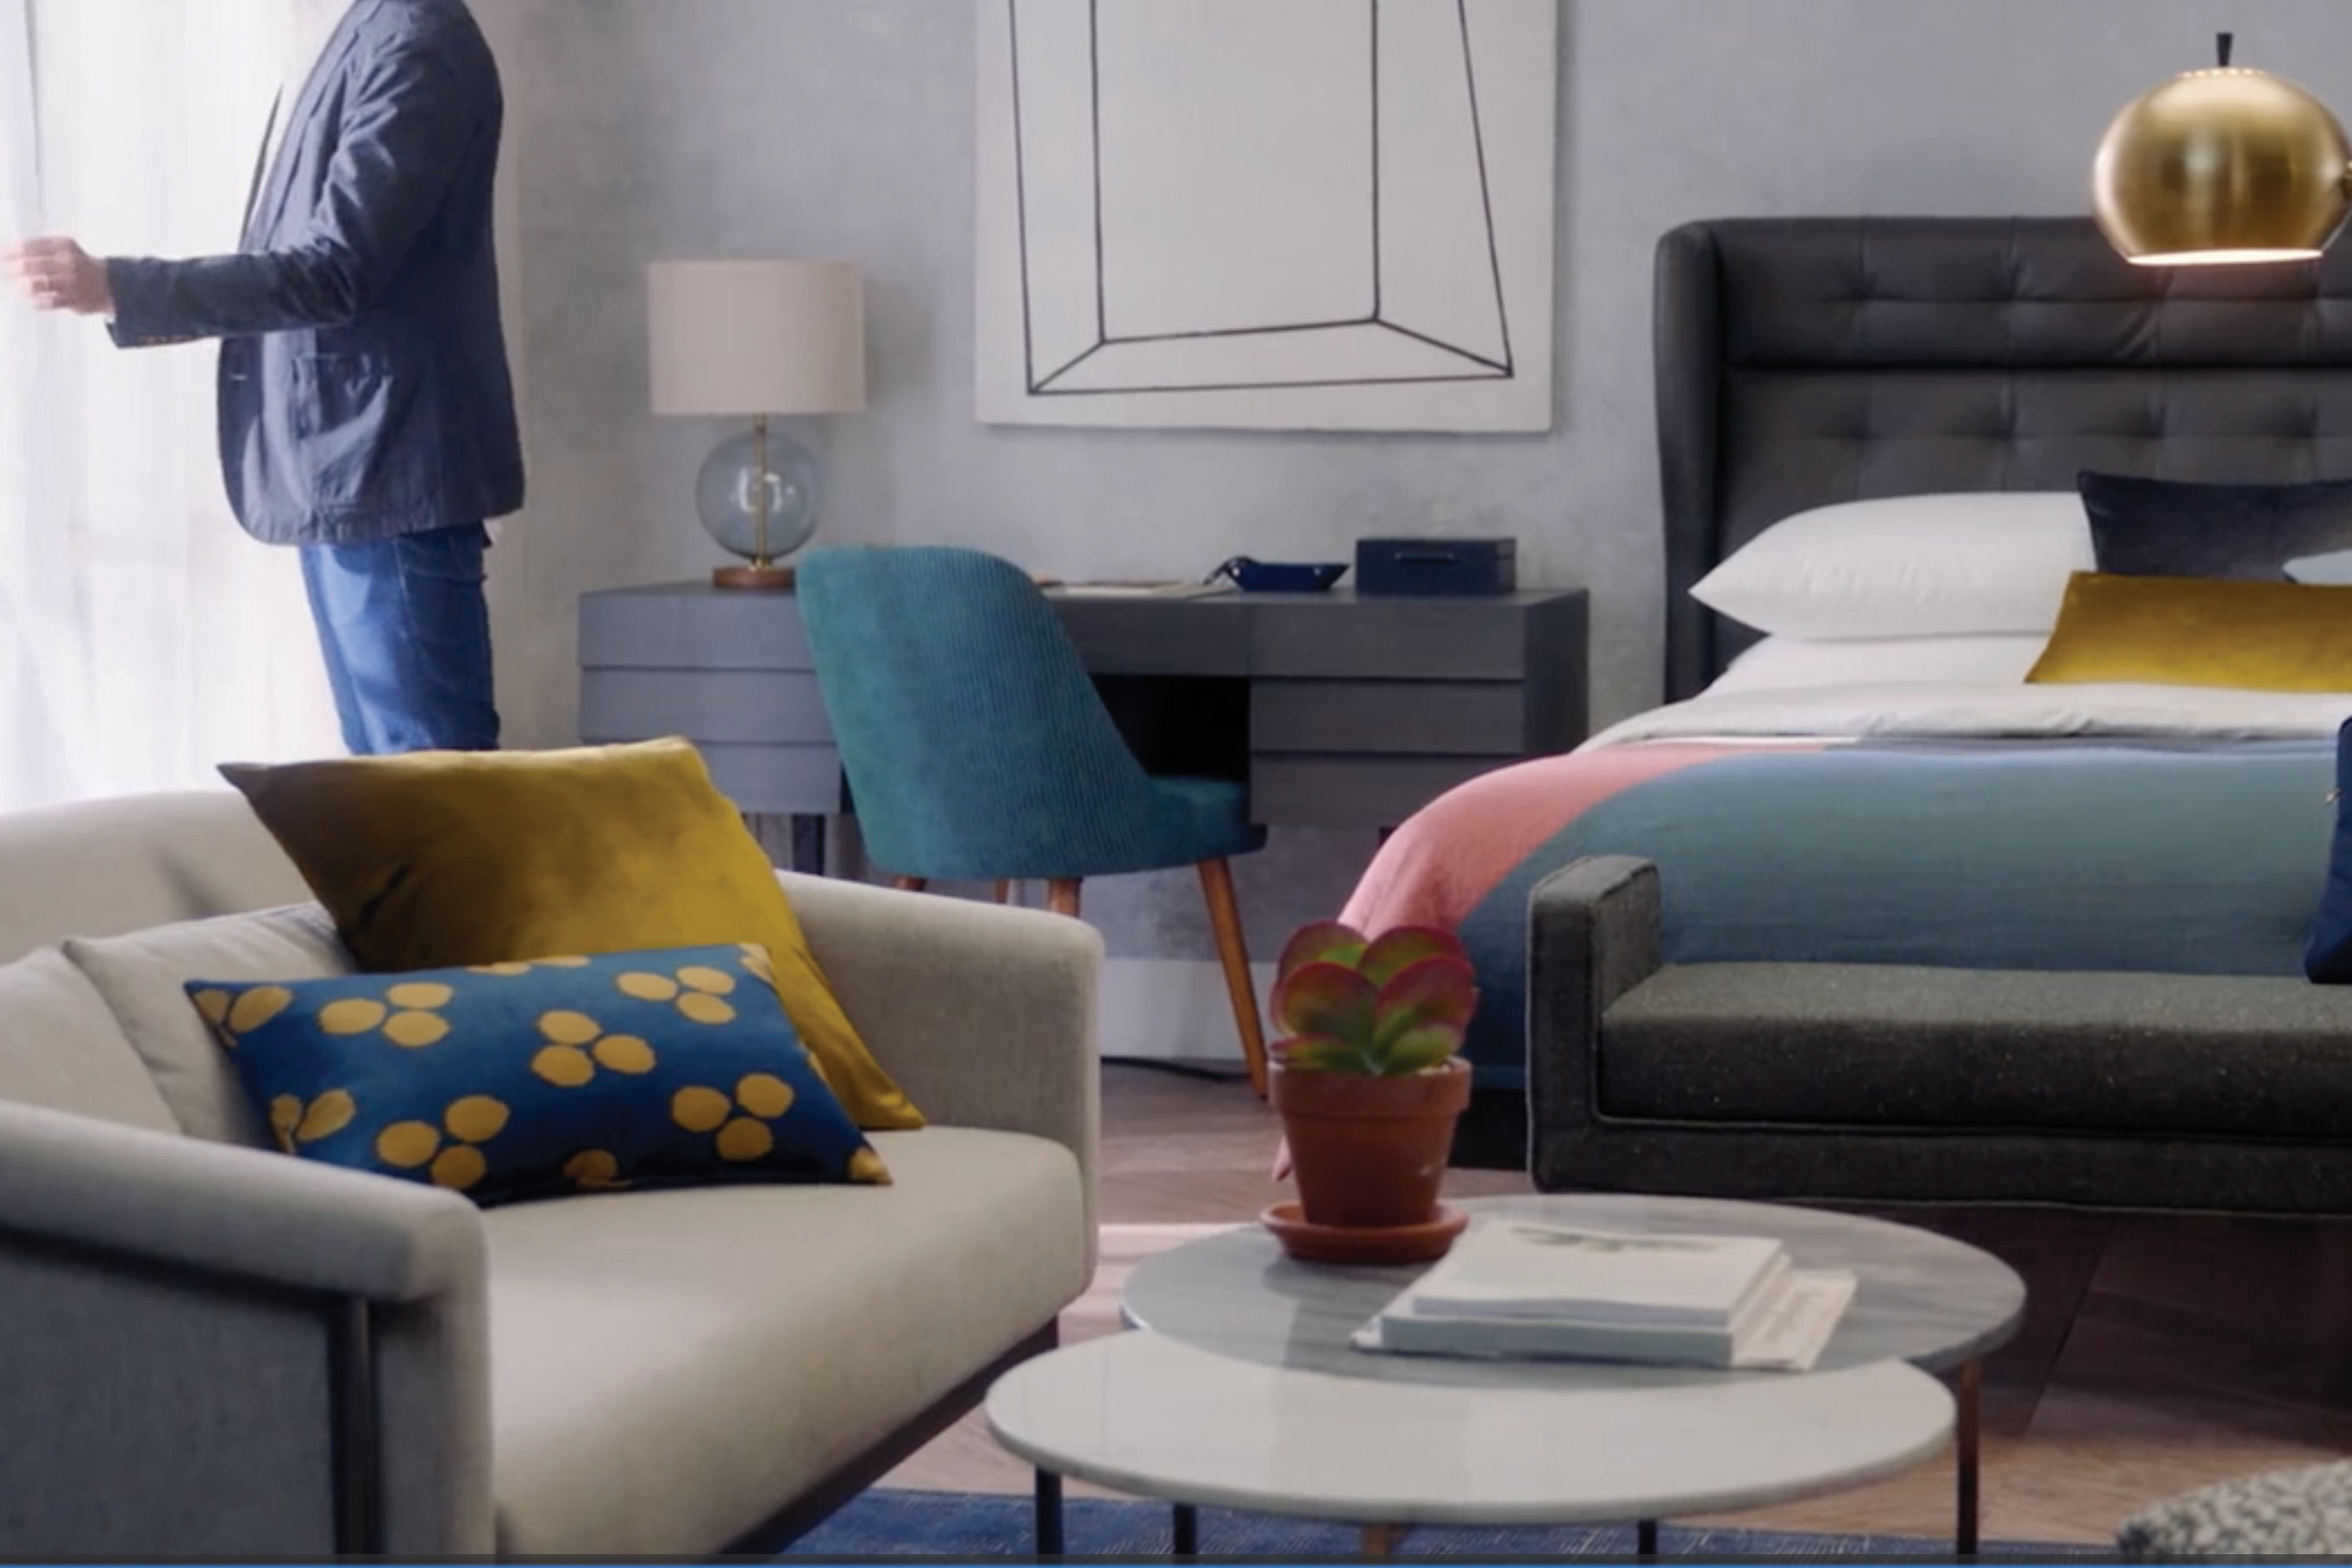 LVMH, Taco Bell, and West Elm are among lifestyle brands are opening hotels to create immersive brand experiences